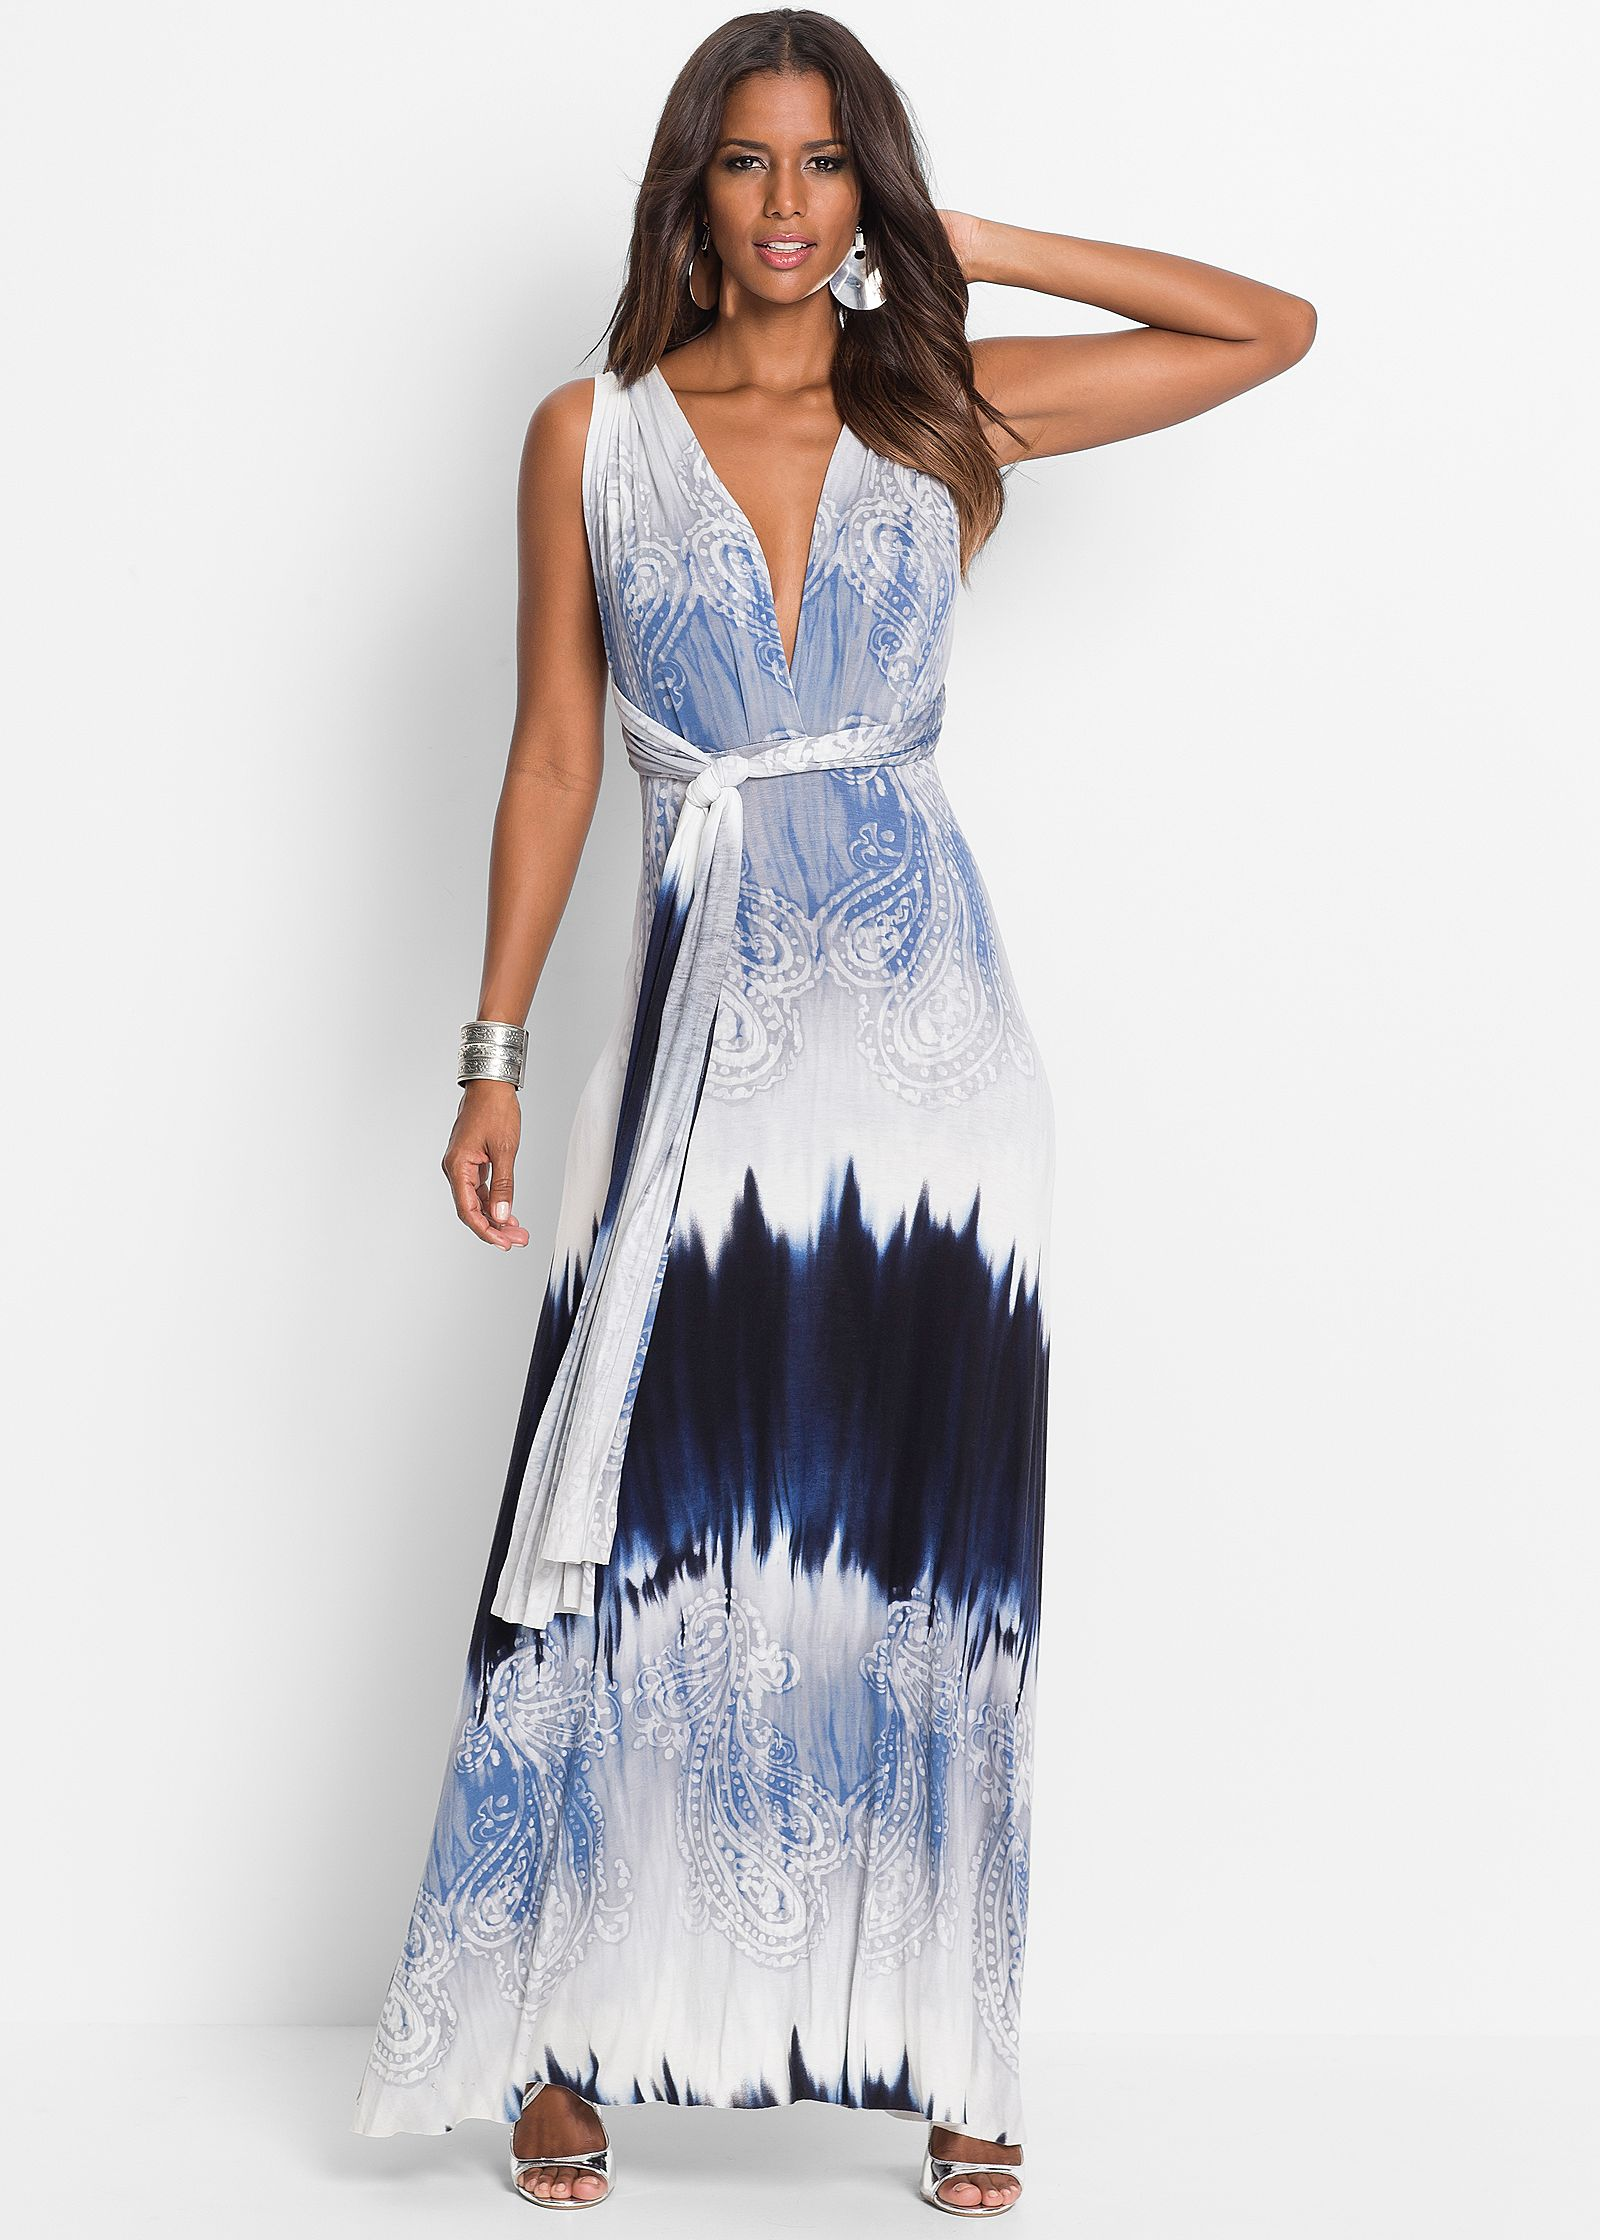 TIE DYE PRINTED MAXI DRESS, BUTTERFLY LACE BACK BRA, HOOP DETAIL EARRINGS